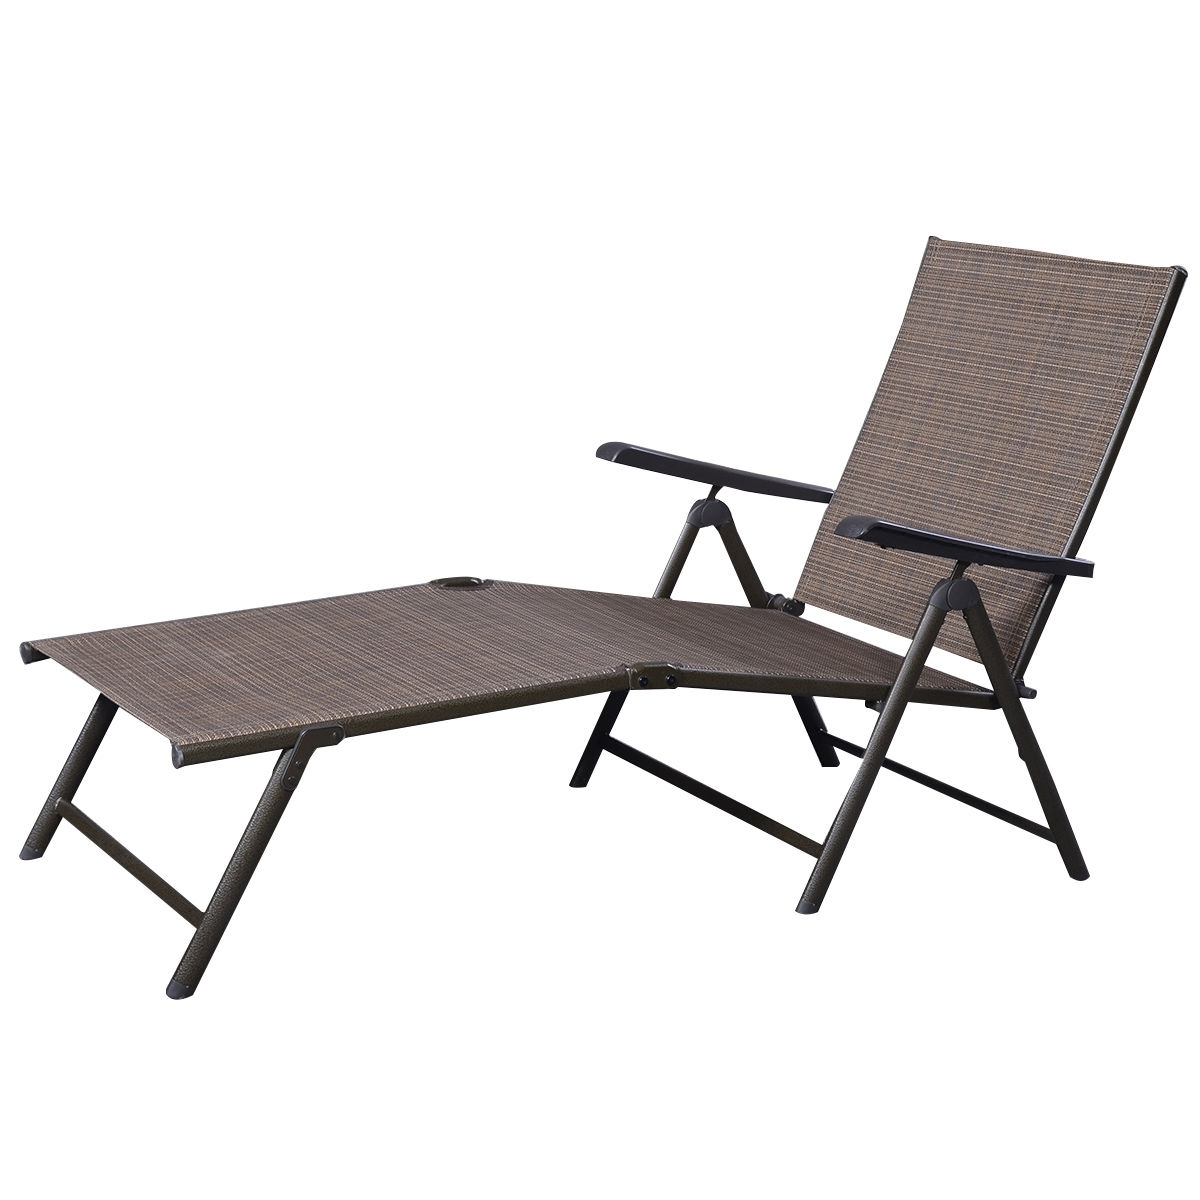 Well Known Chaise Lounge Reclining Chairs For Outdoor Inside Outdoor Adjustable Chaise Lounge Chair – Sunloungers – Outdoor (View 14 of 15)